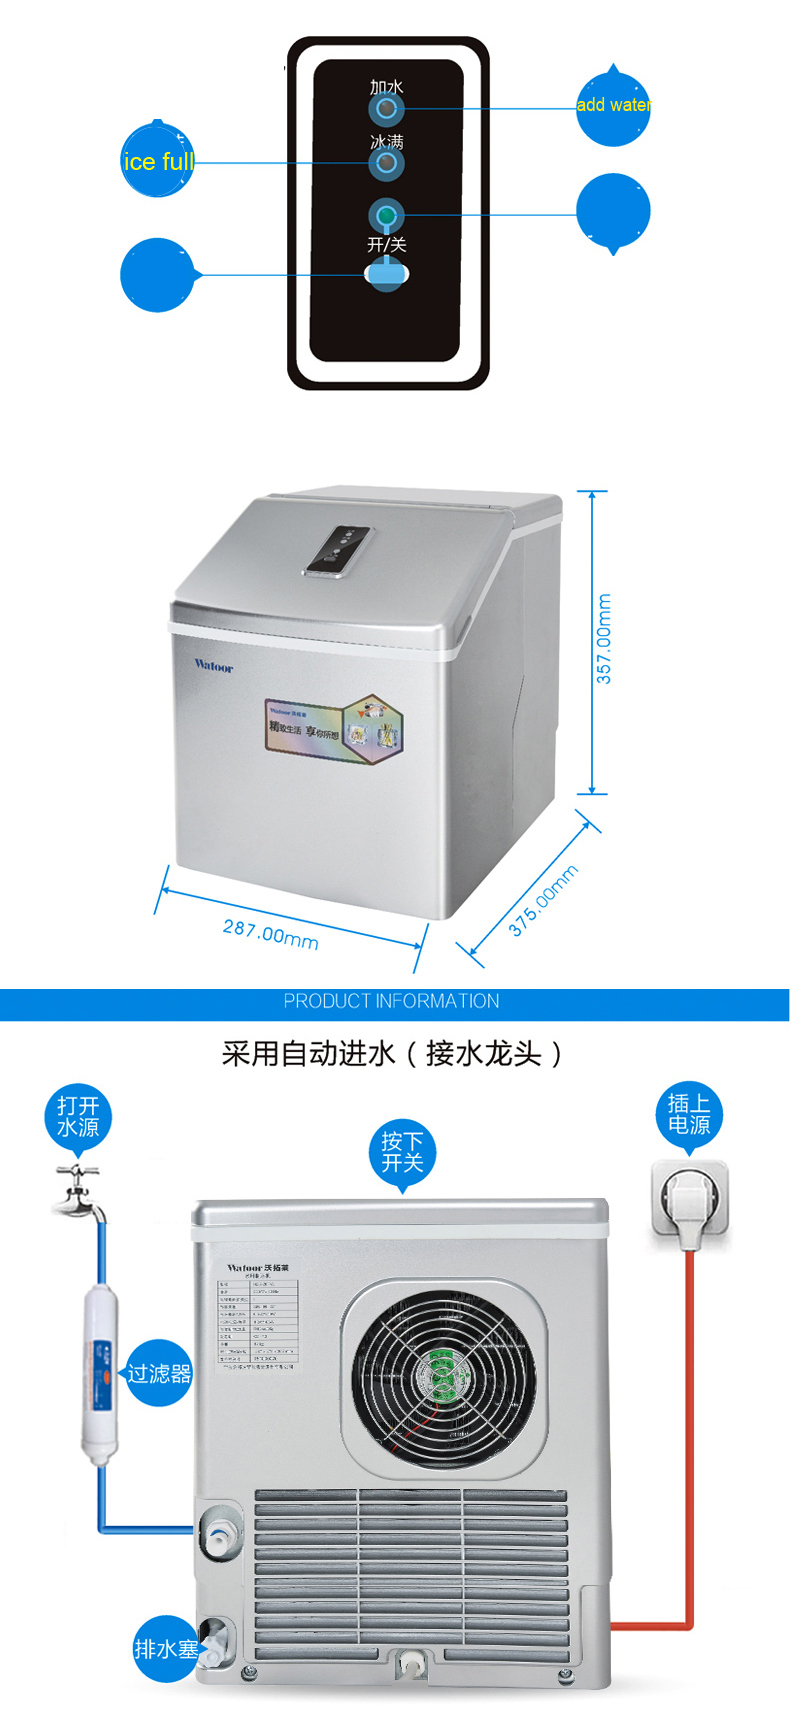 IS-HZB-20F Aautomatic Water Intake Ice Cube Maker Machine For Juicer Bar